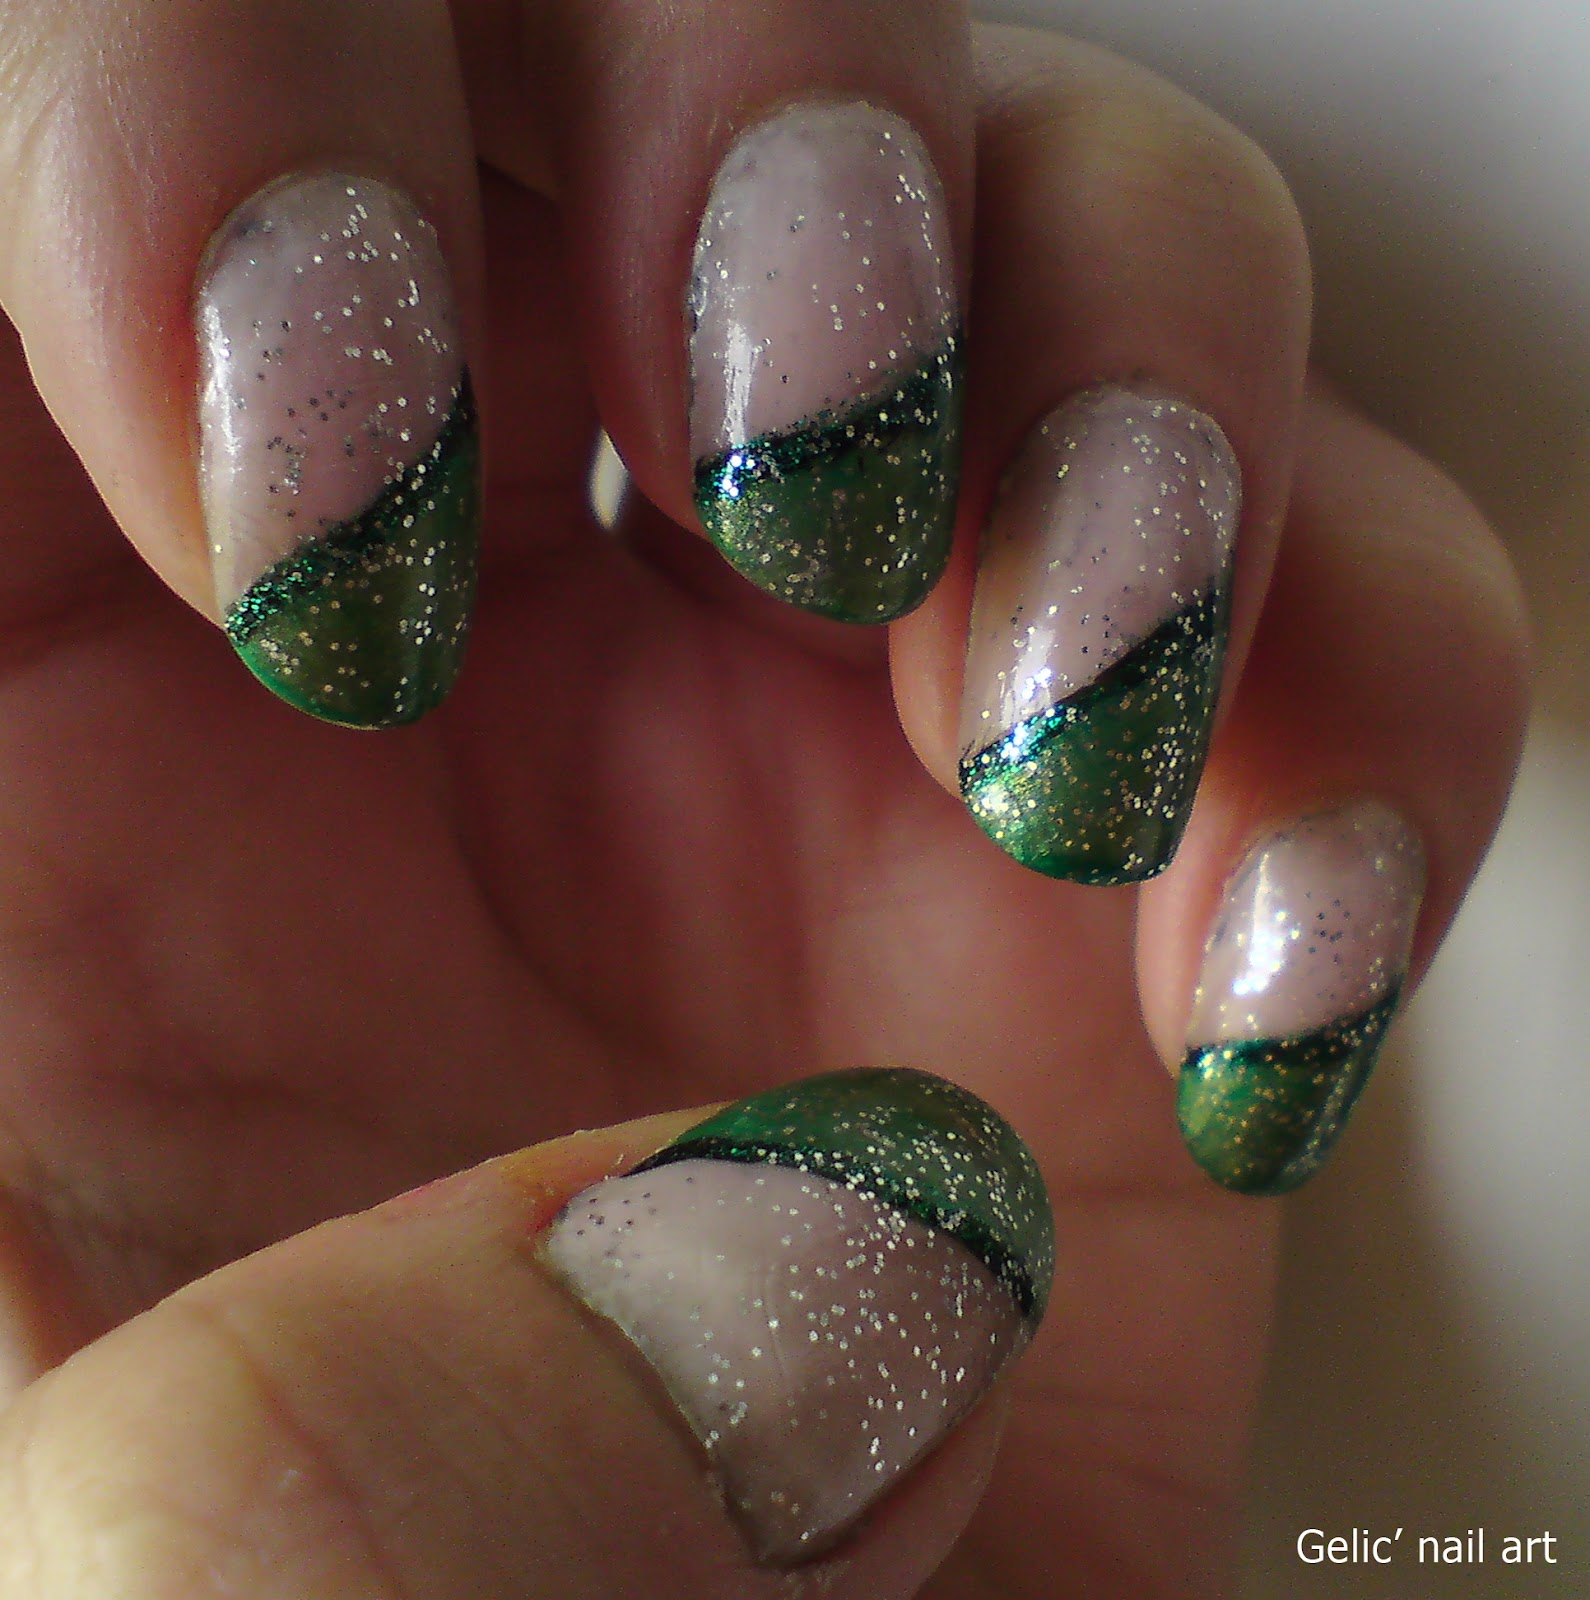 Gelic\' nail art: Green sloping funky frech with glitter top coat